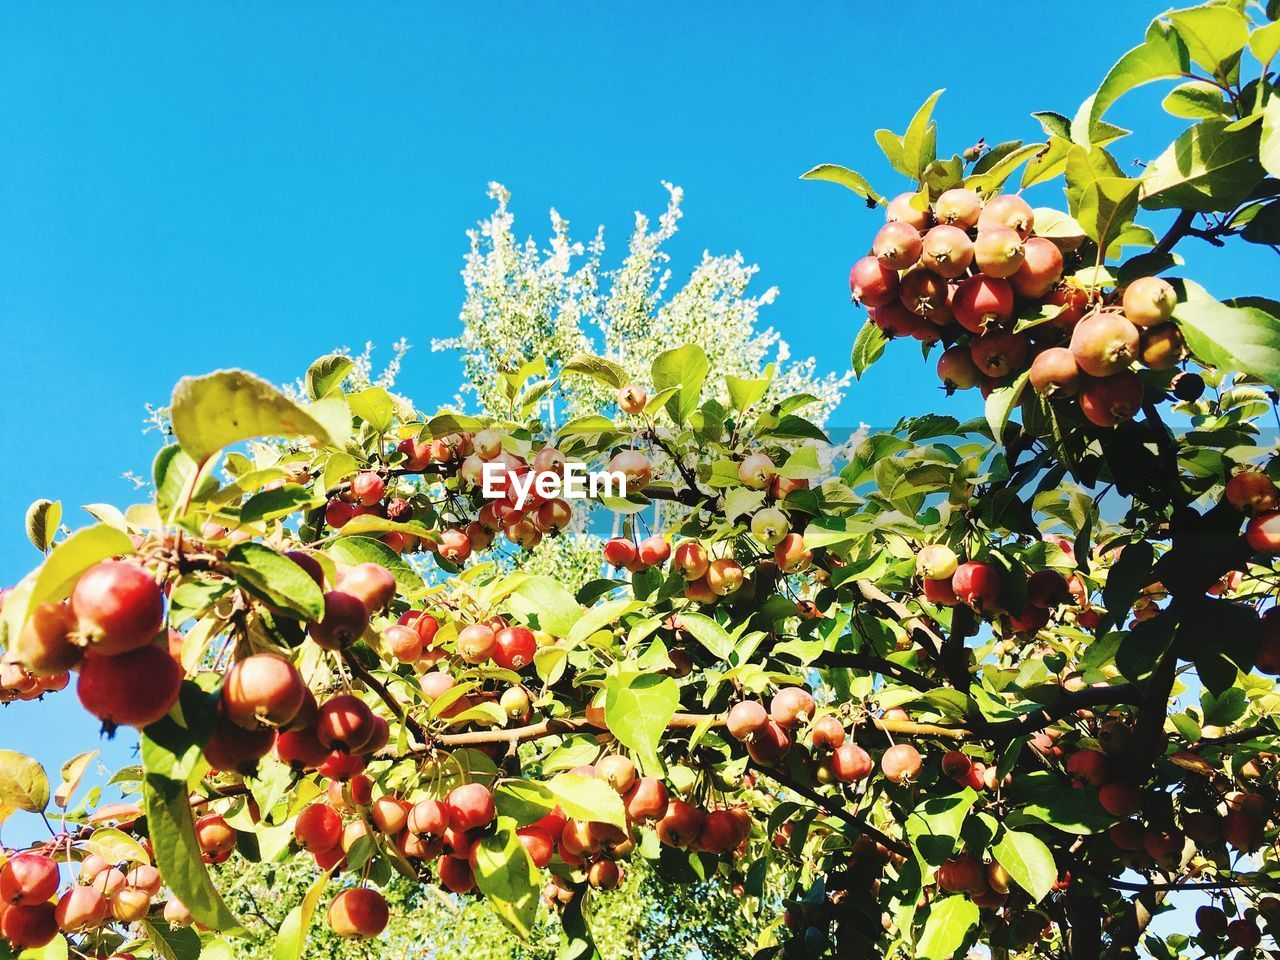 healthy eating, fruit, food and drink, food, plant, growth, freshness, sky, wellbeing, nature, tree, no people, clear sky, low angle view, day, leaf, beauty in nature, berry fruit, plant part, green color, ripe, outdoors, rowanberry